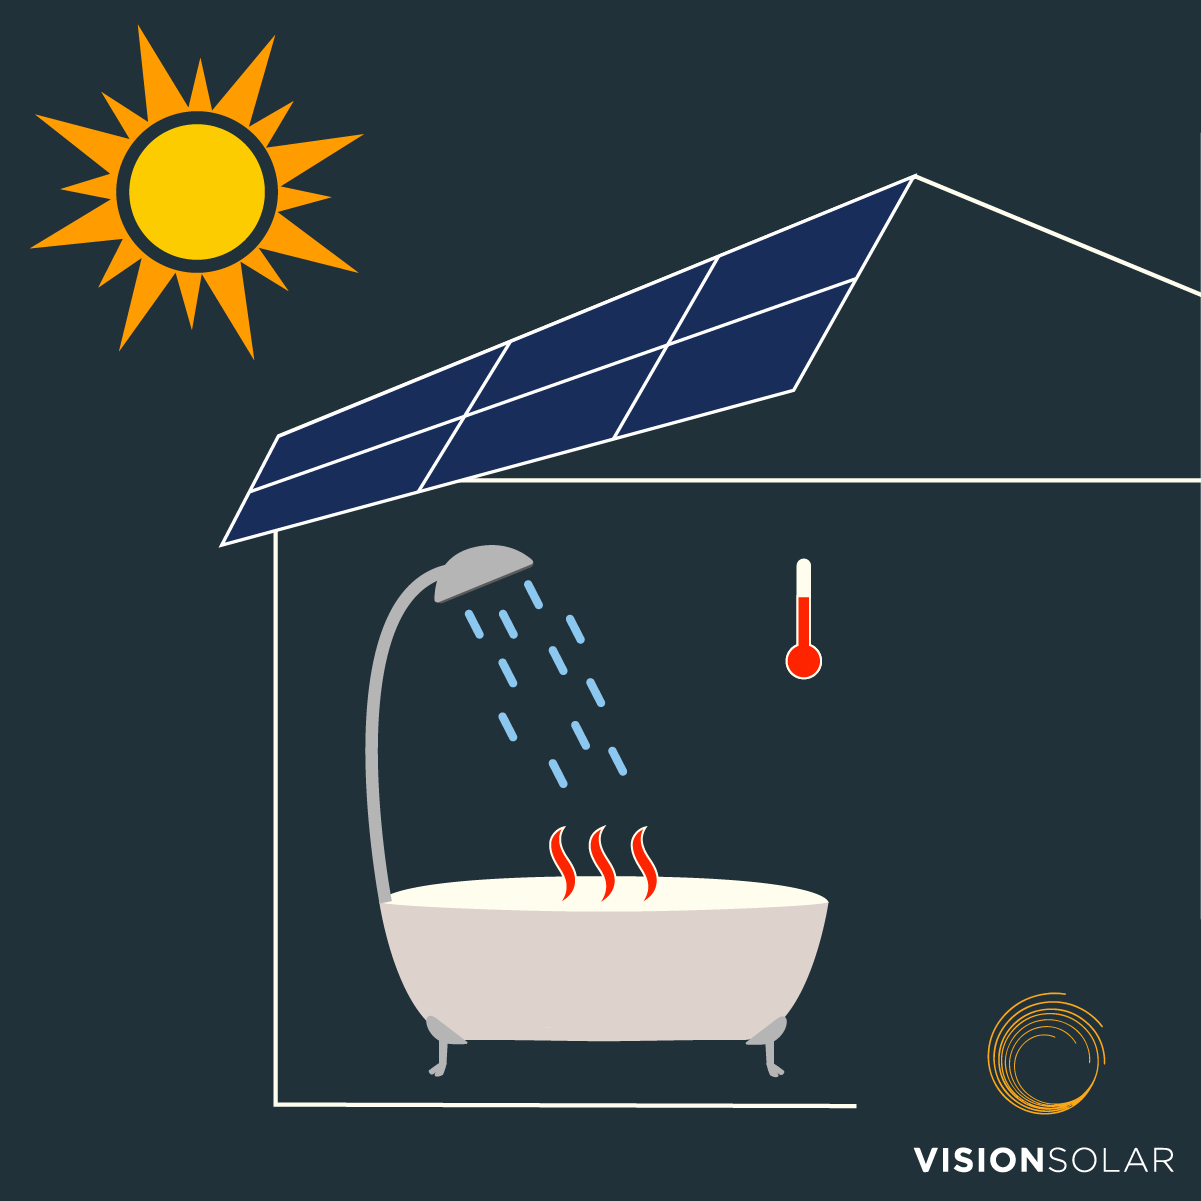 Vision Solar : 2 Types of Solar Energy